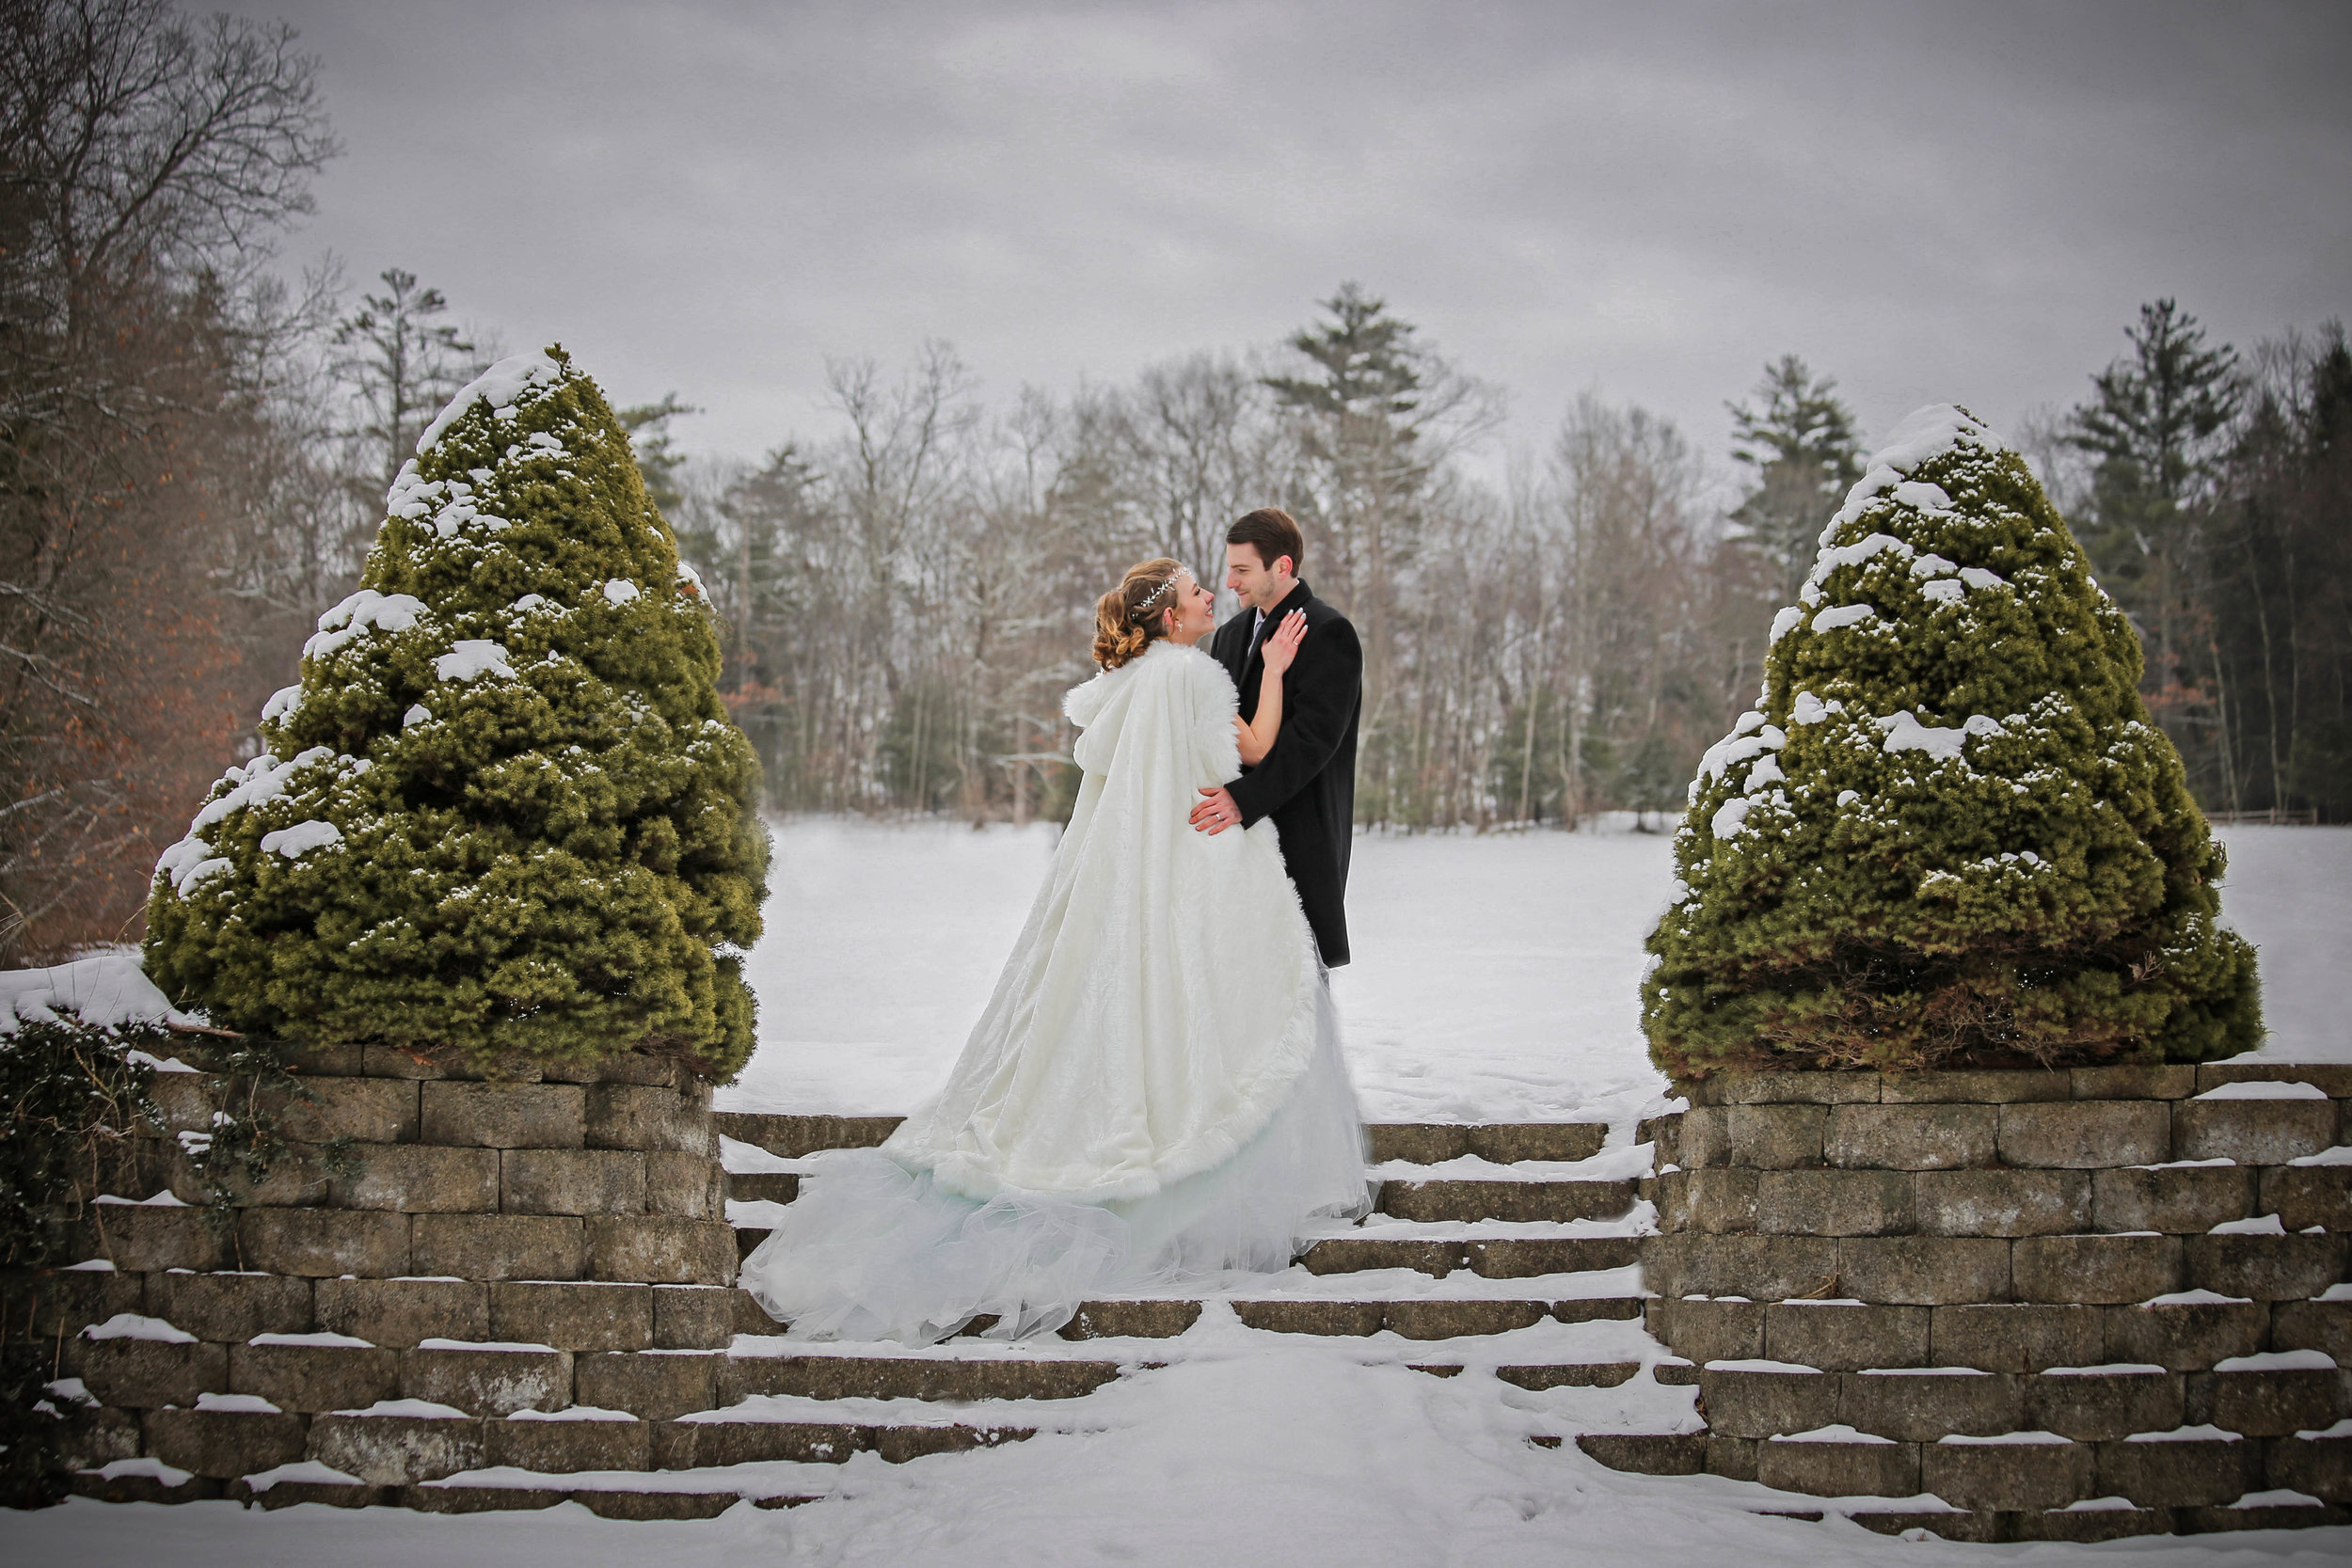 Ryan Geiger wedding photographer.jpg